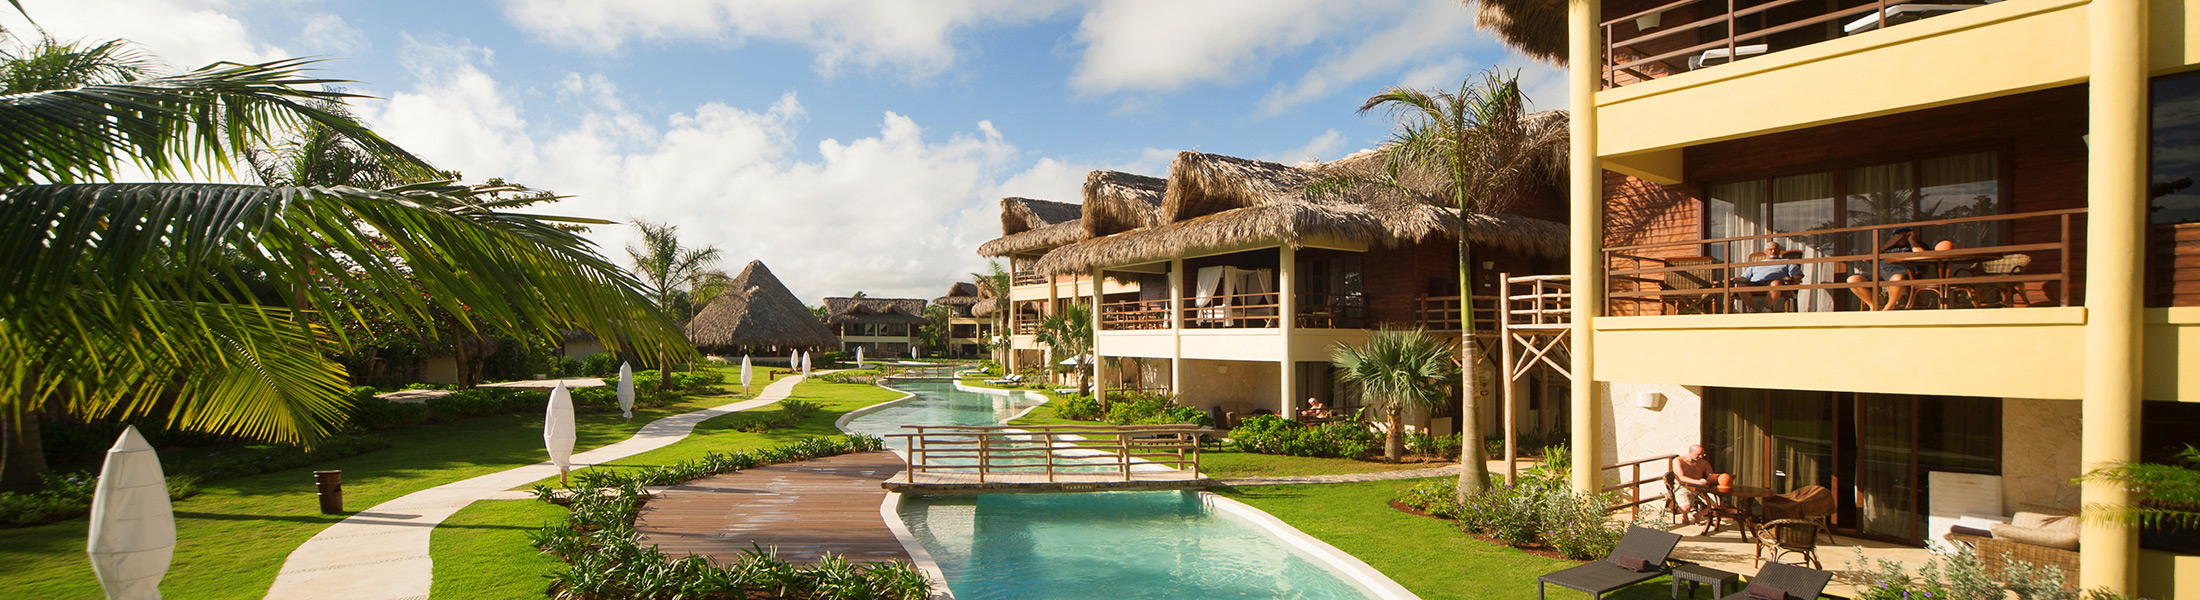 Freeform pool & suites at Zoetry Agua Punta Cana